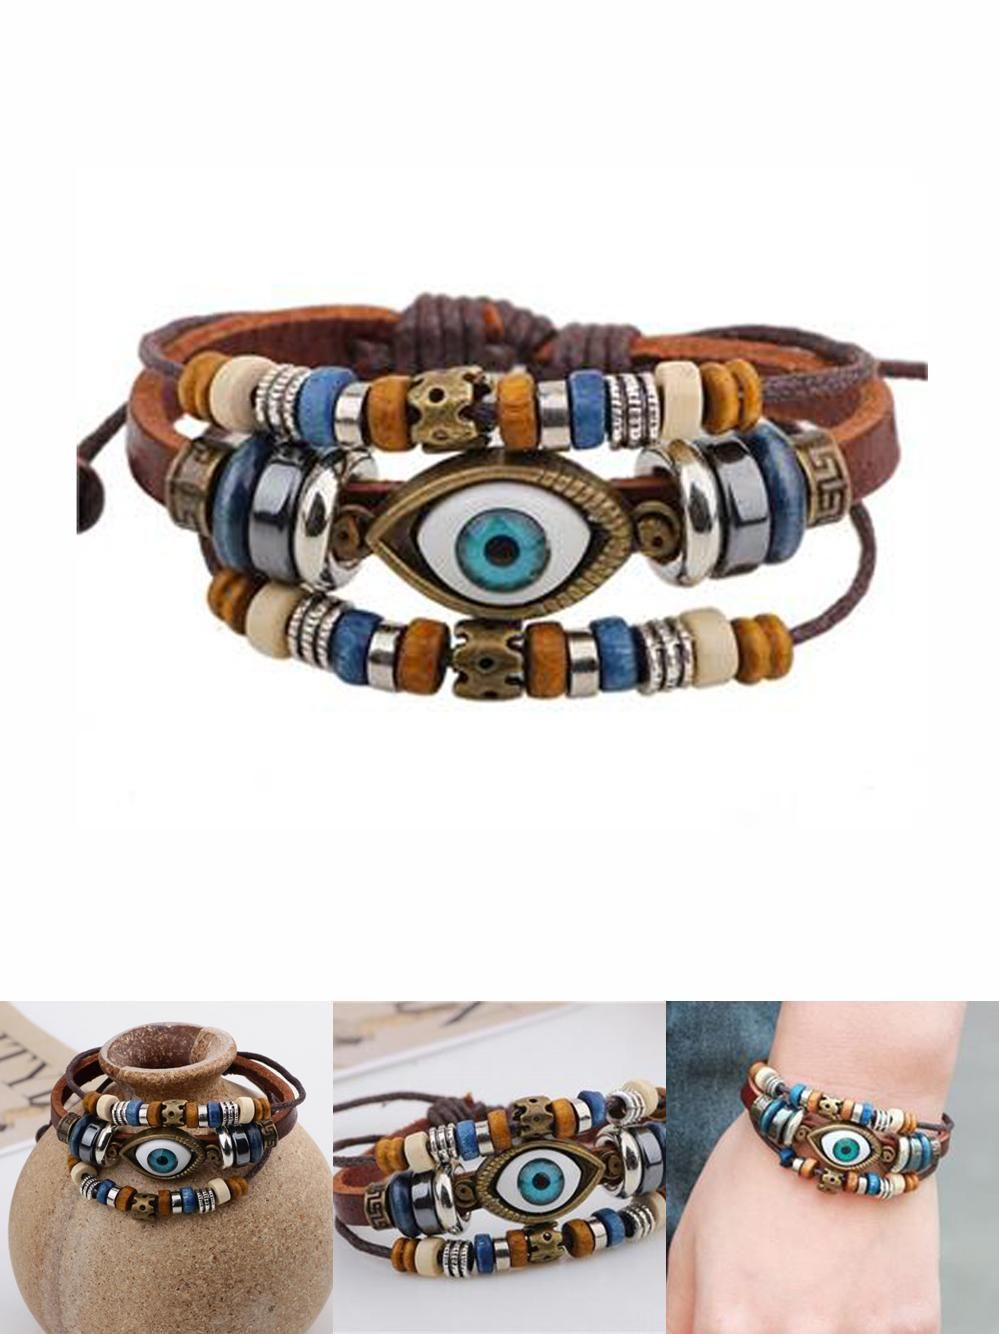 Visit to buy punk design turkish evil eye bracelets wristband